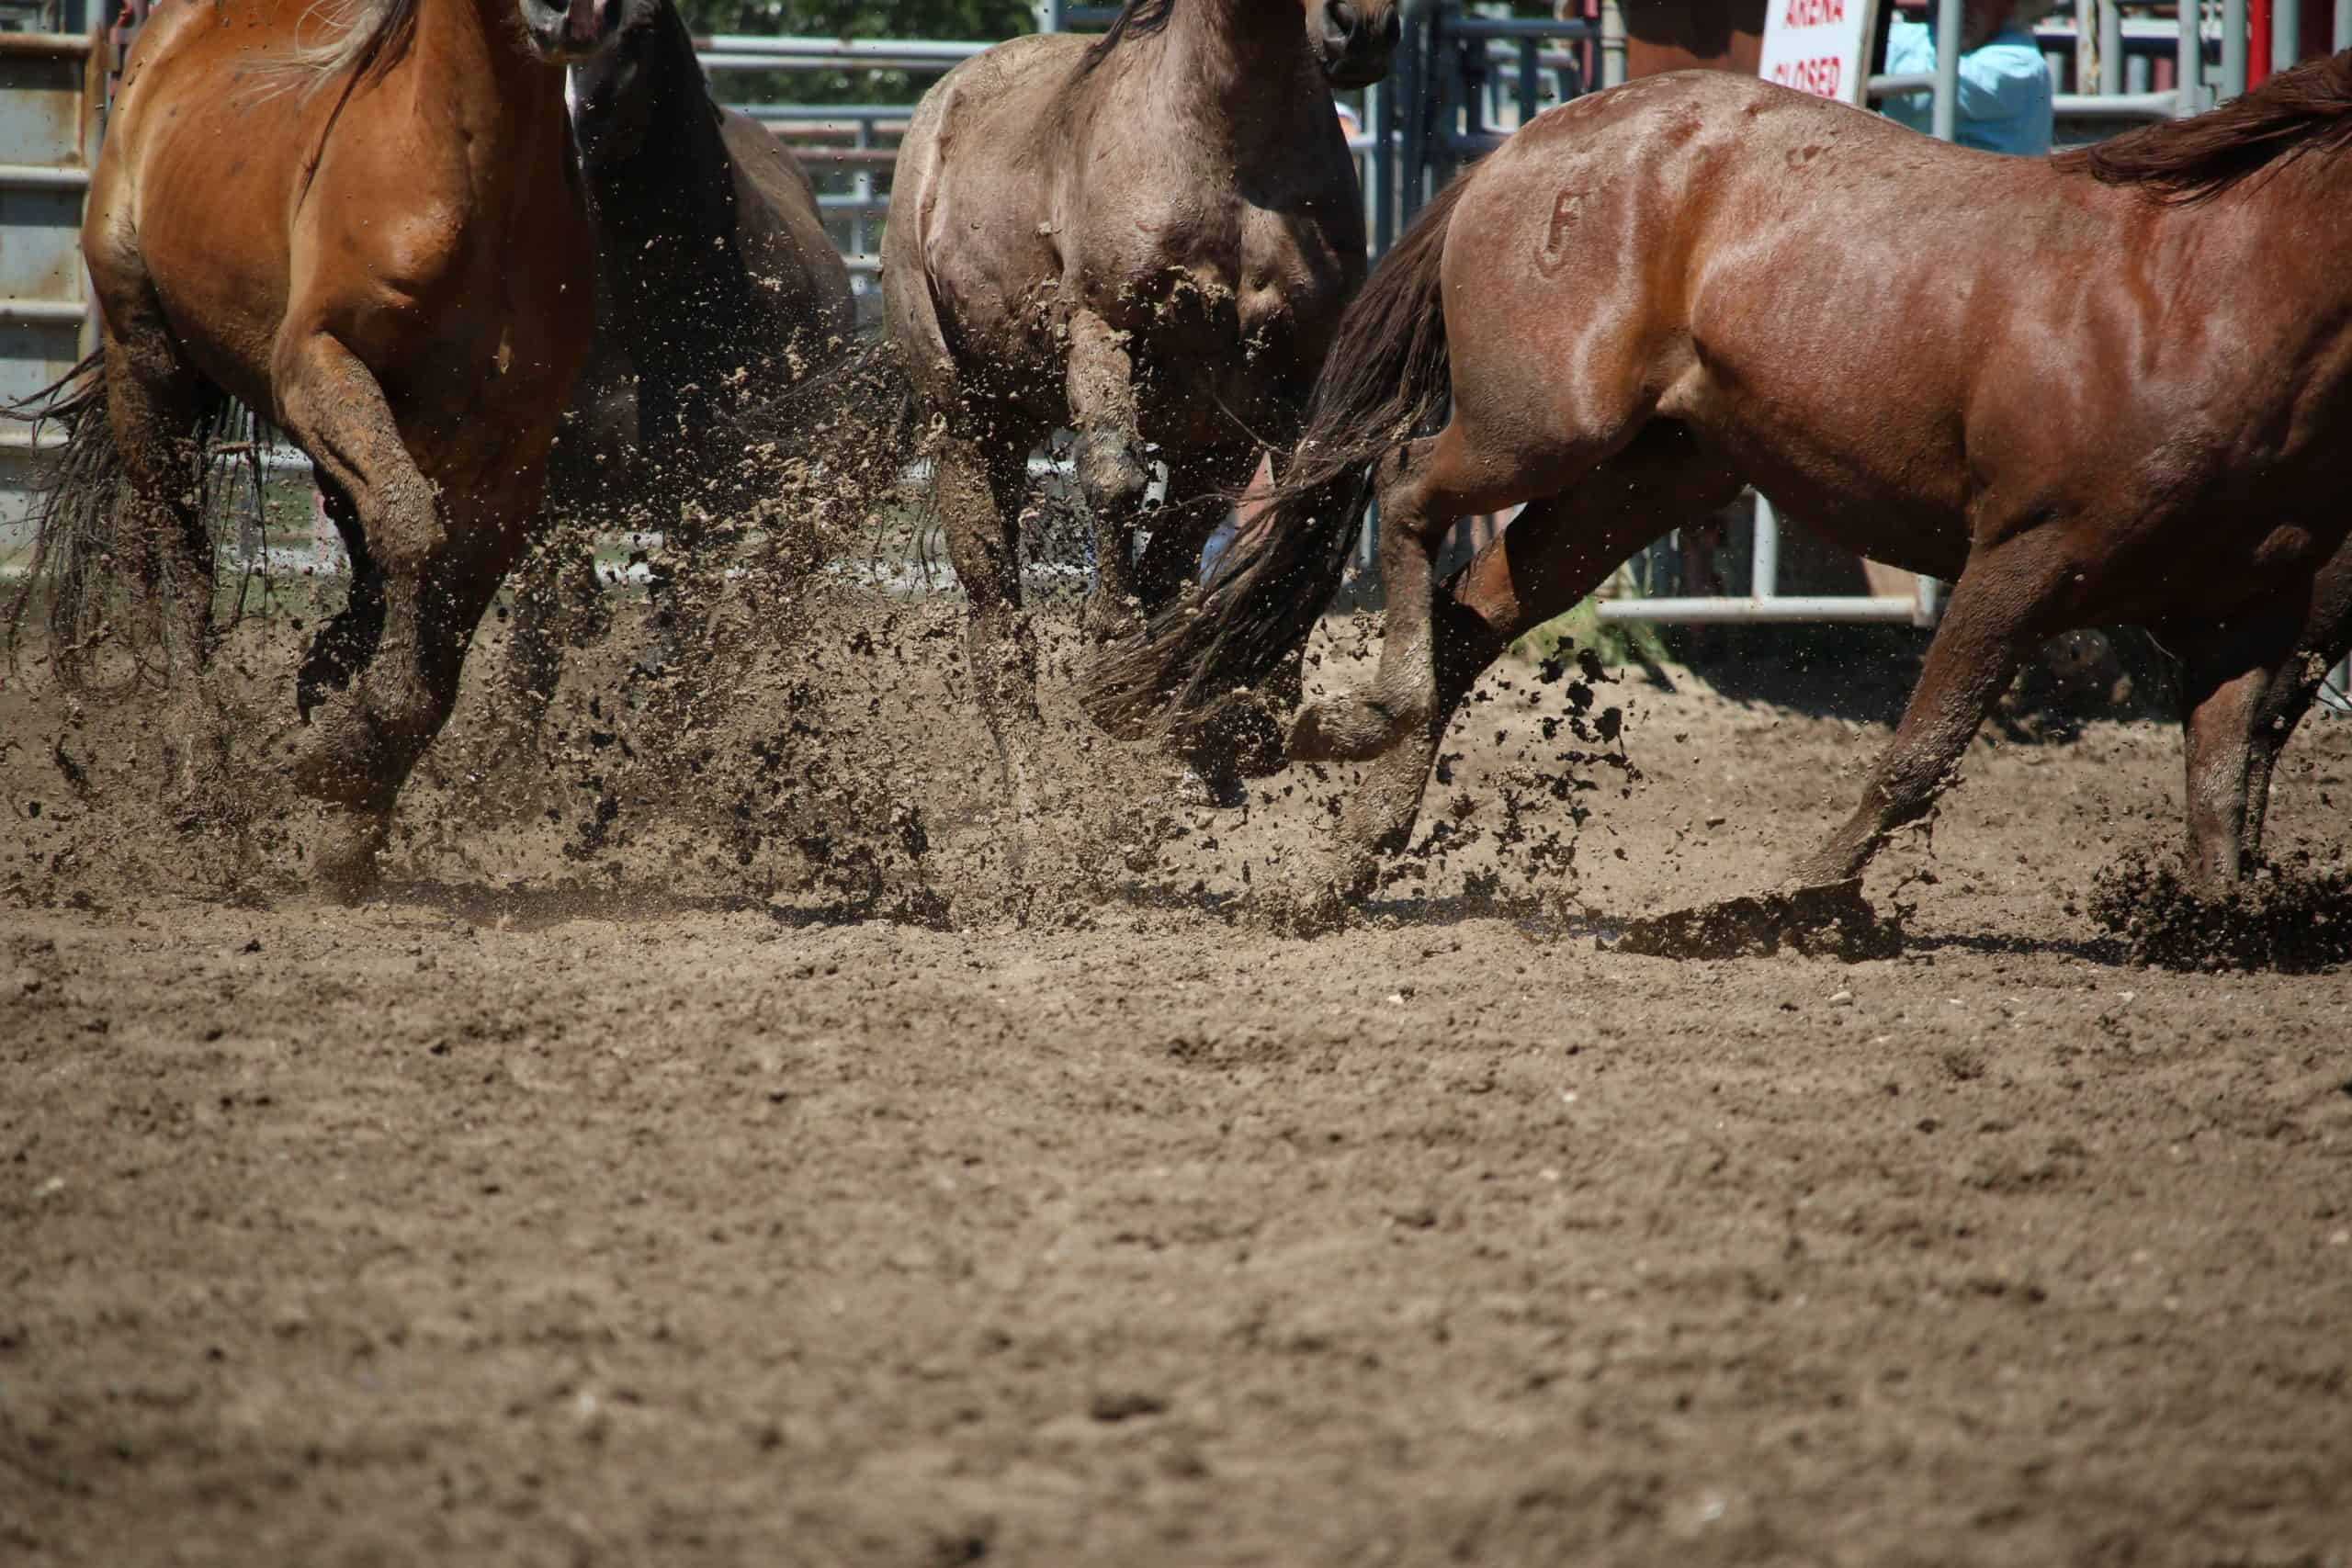 A group of brown horses running through a paddock.